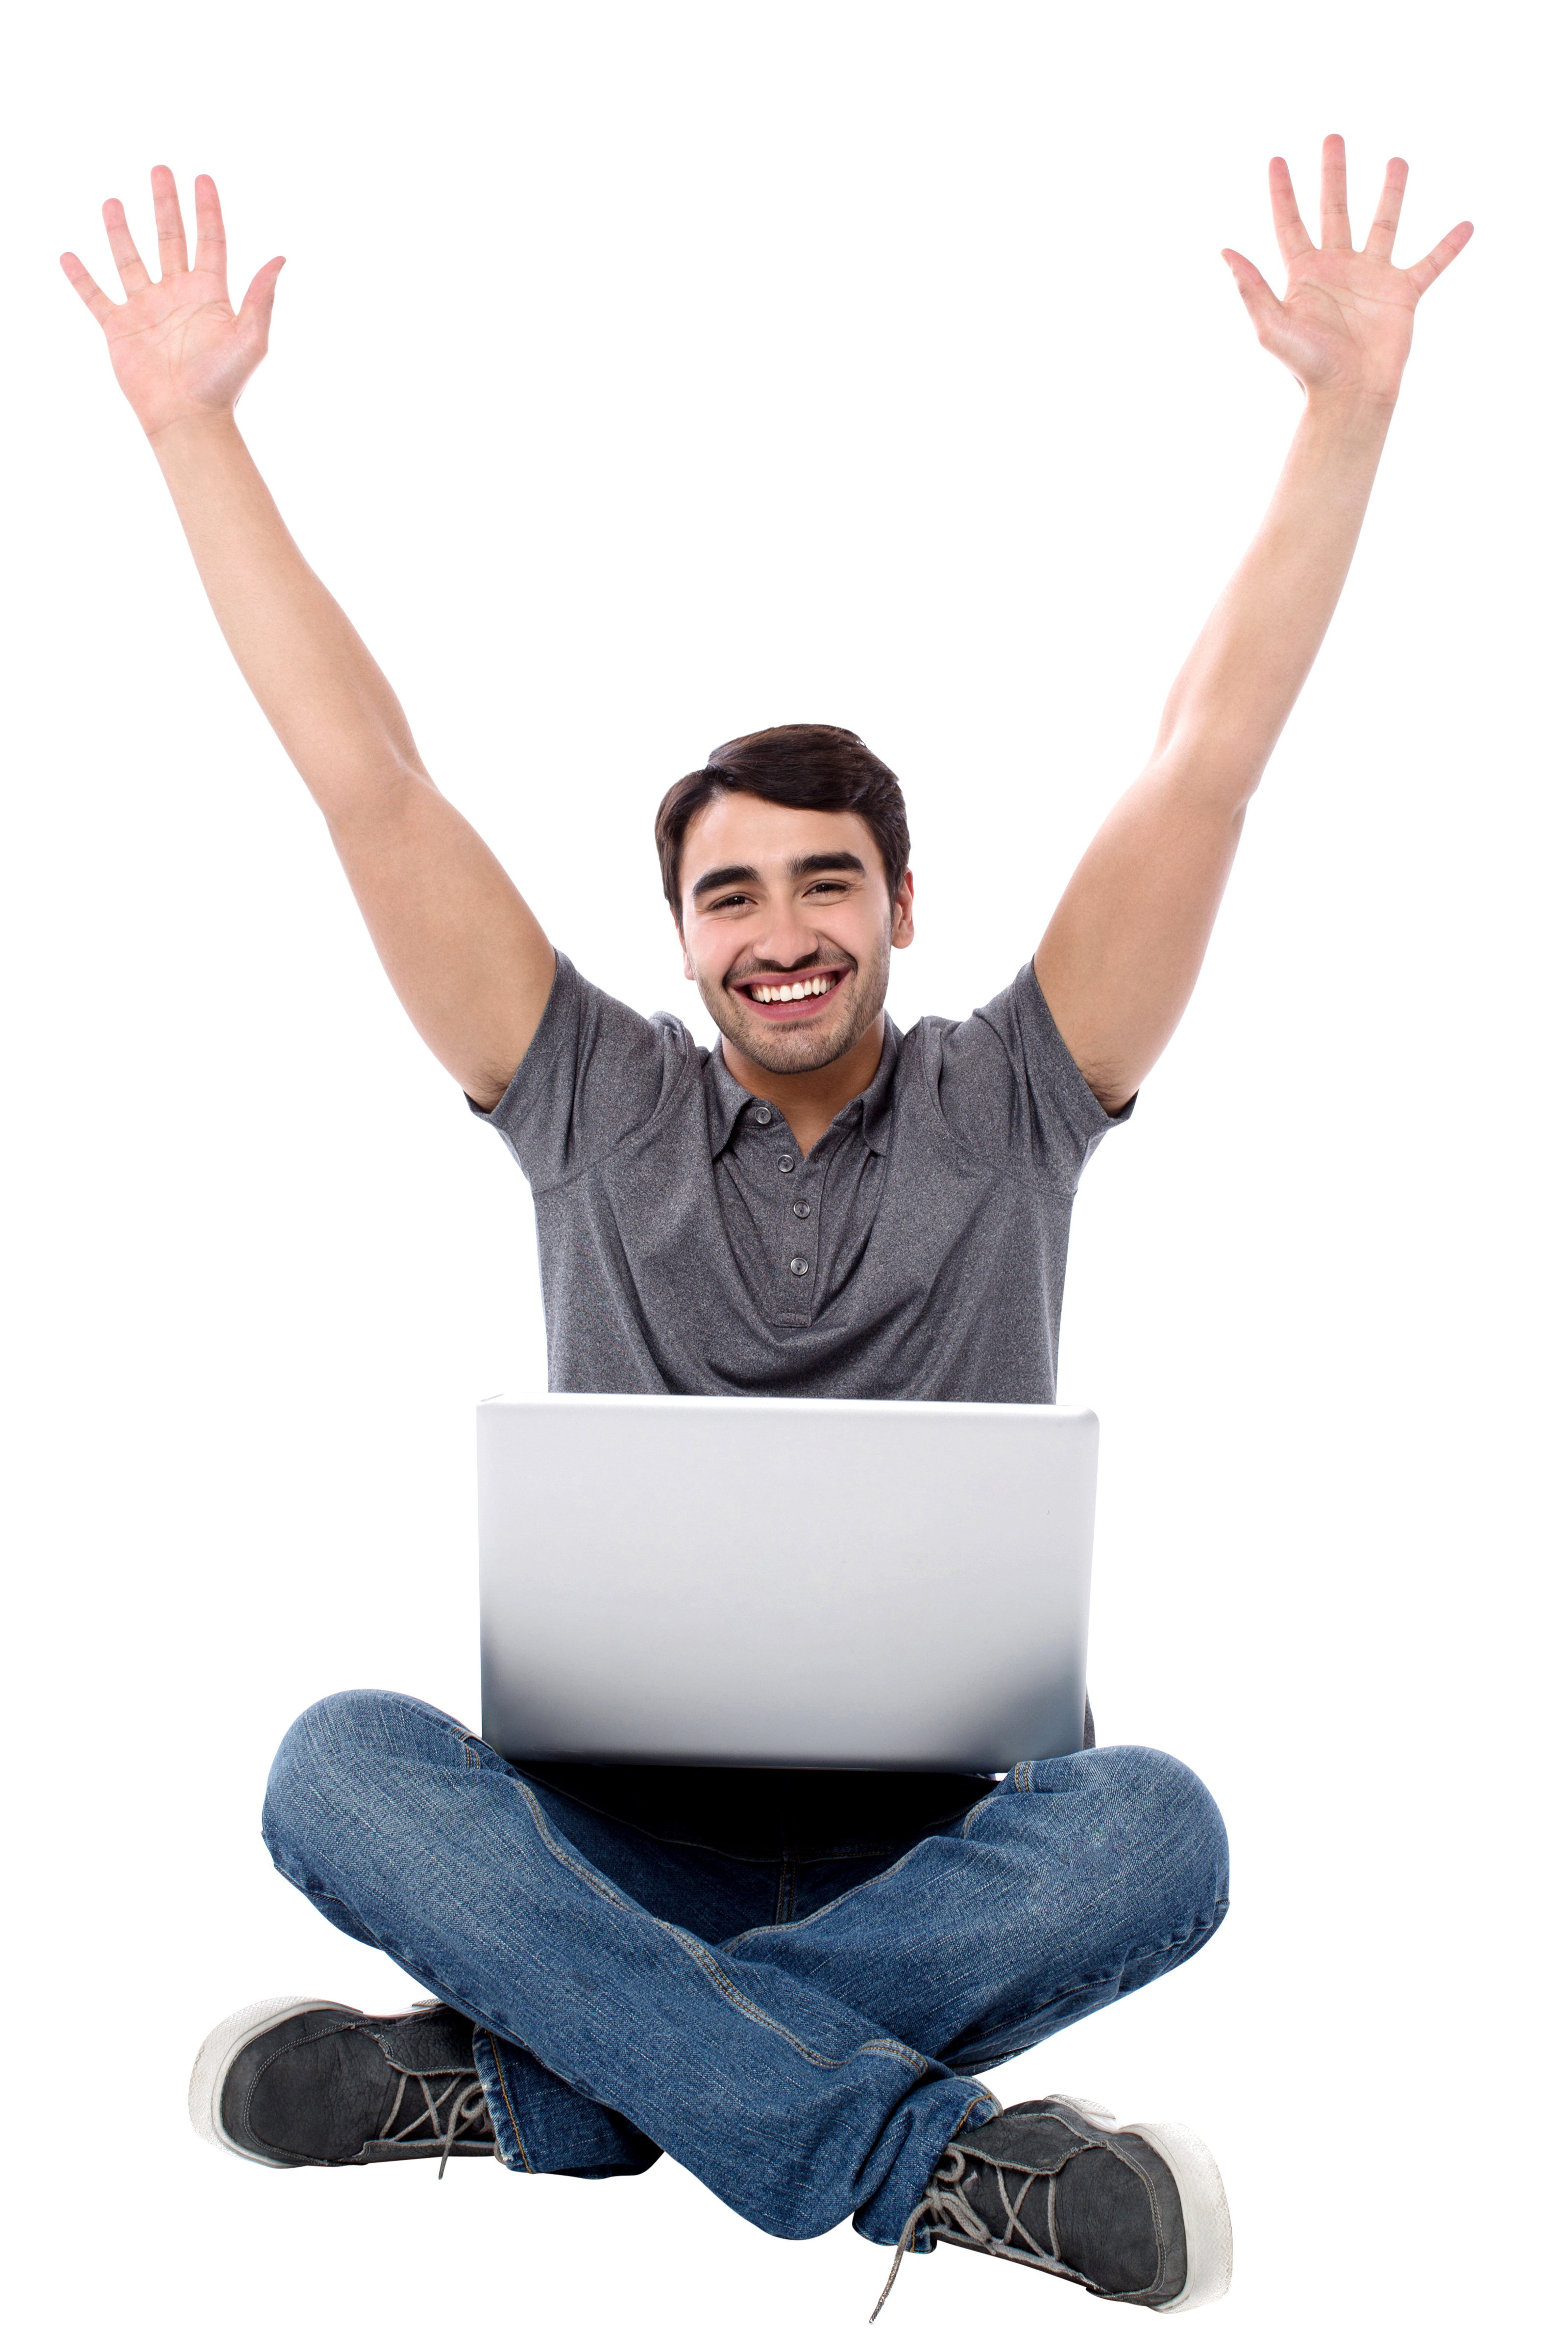 Guy sitting png arms up. Happy men image purepng